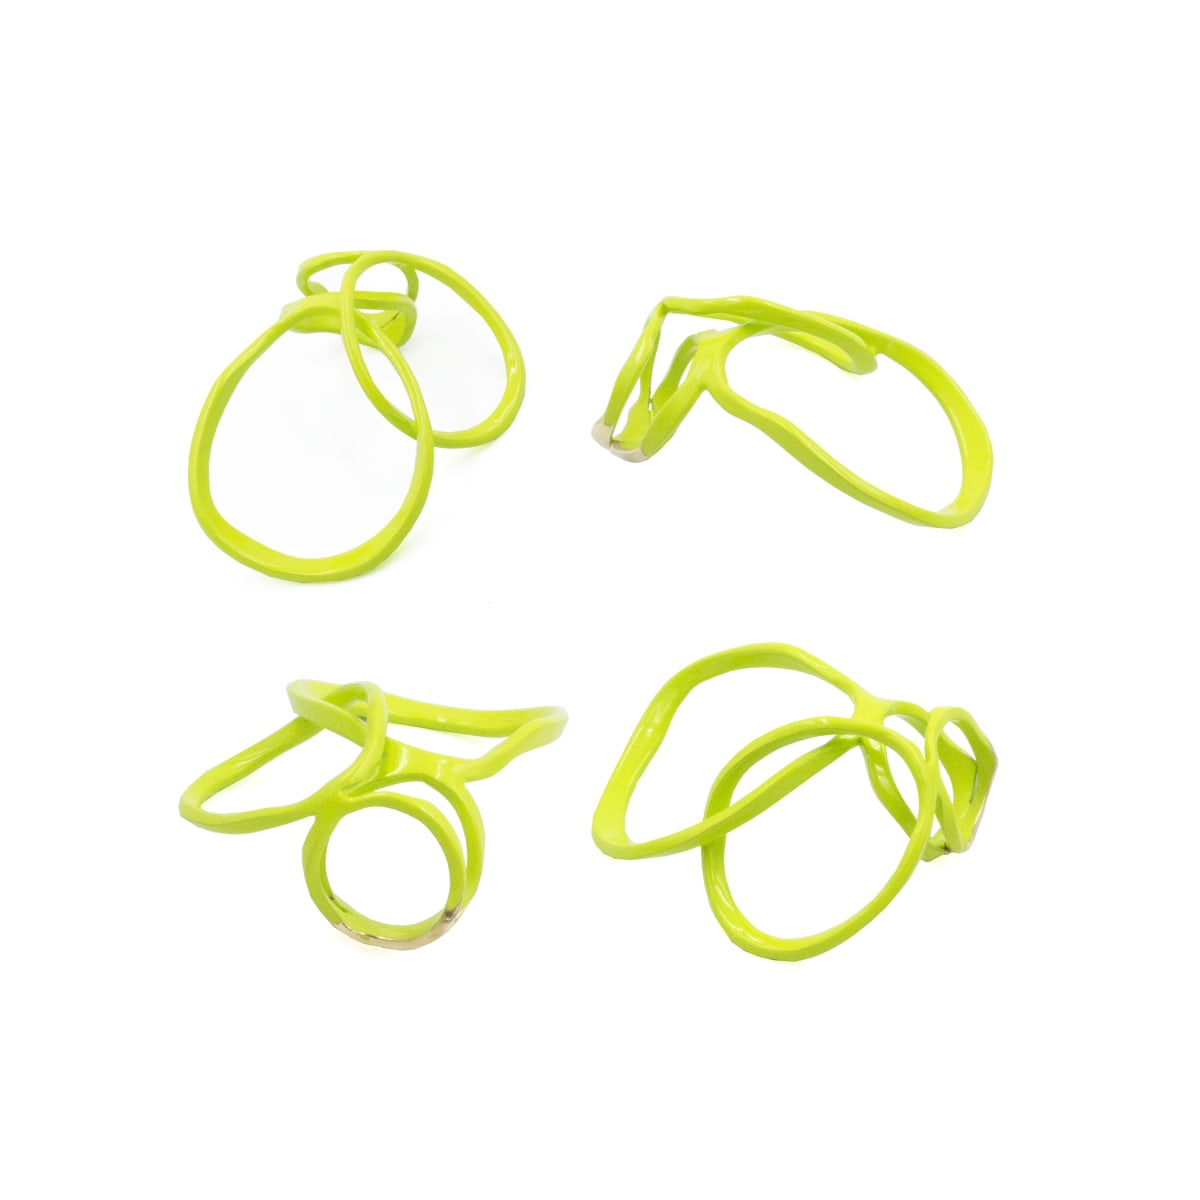 Laura Wood, Open Weave Ring Double CTR